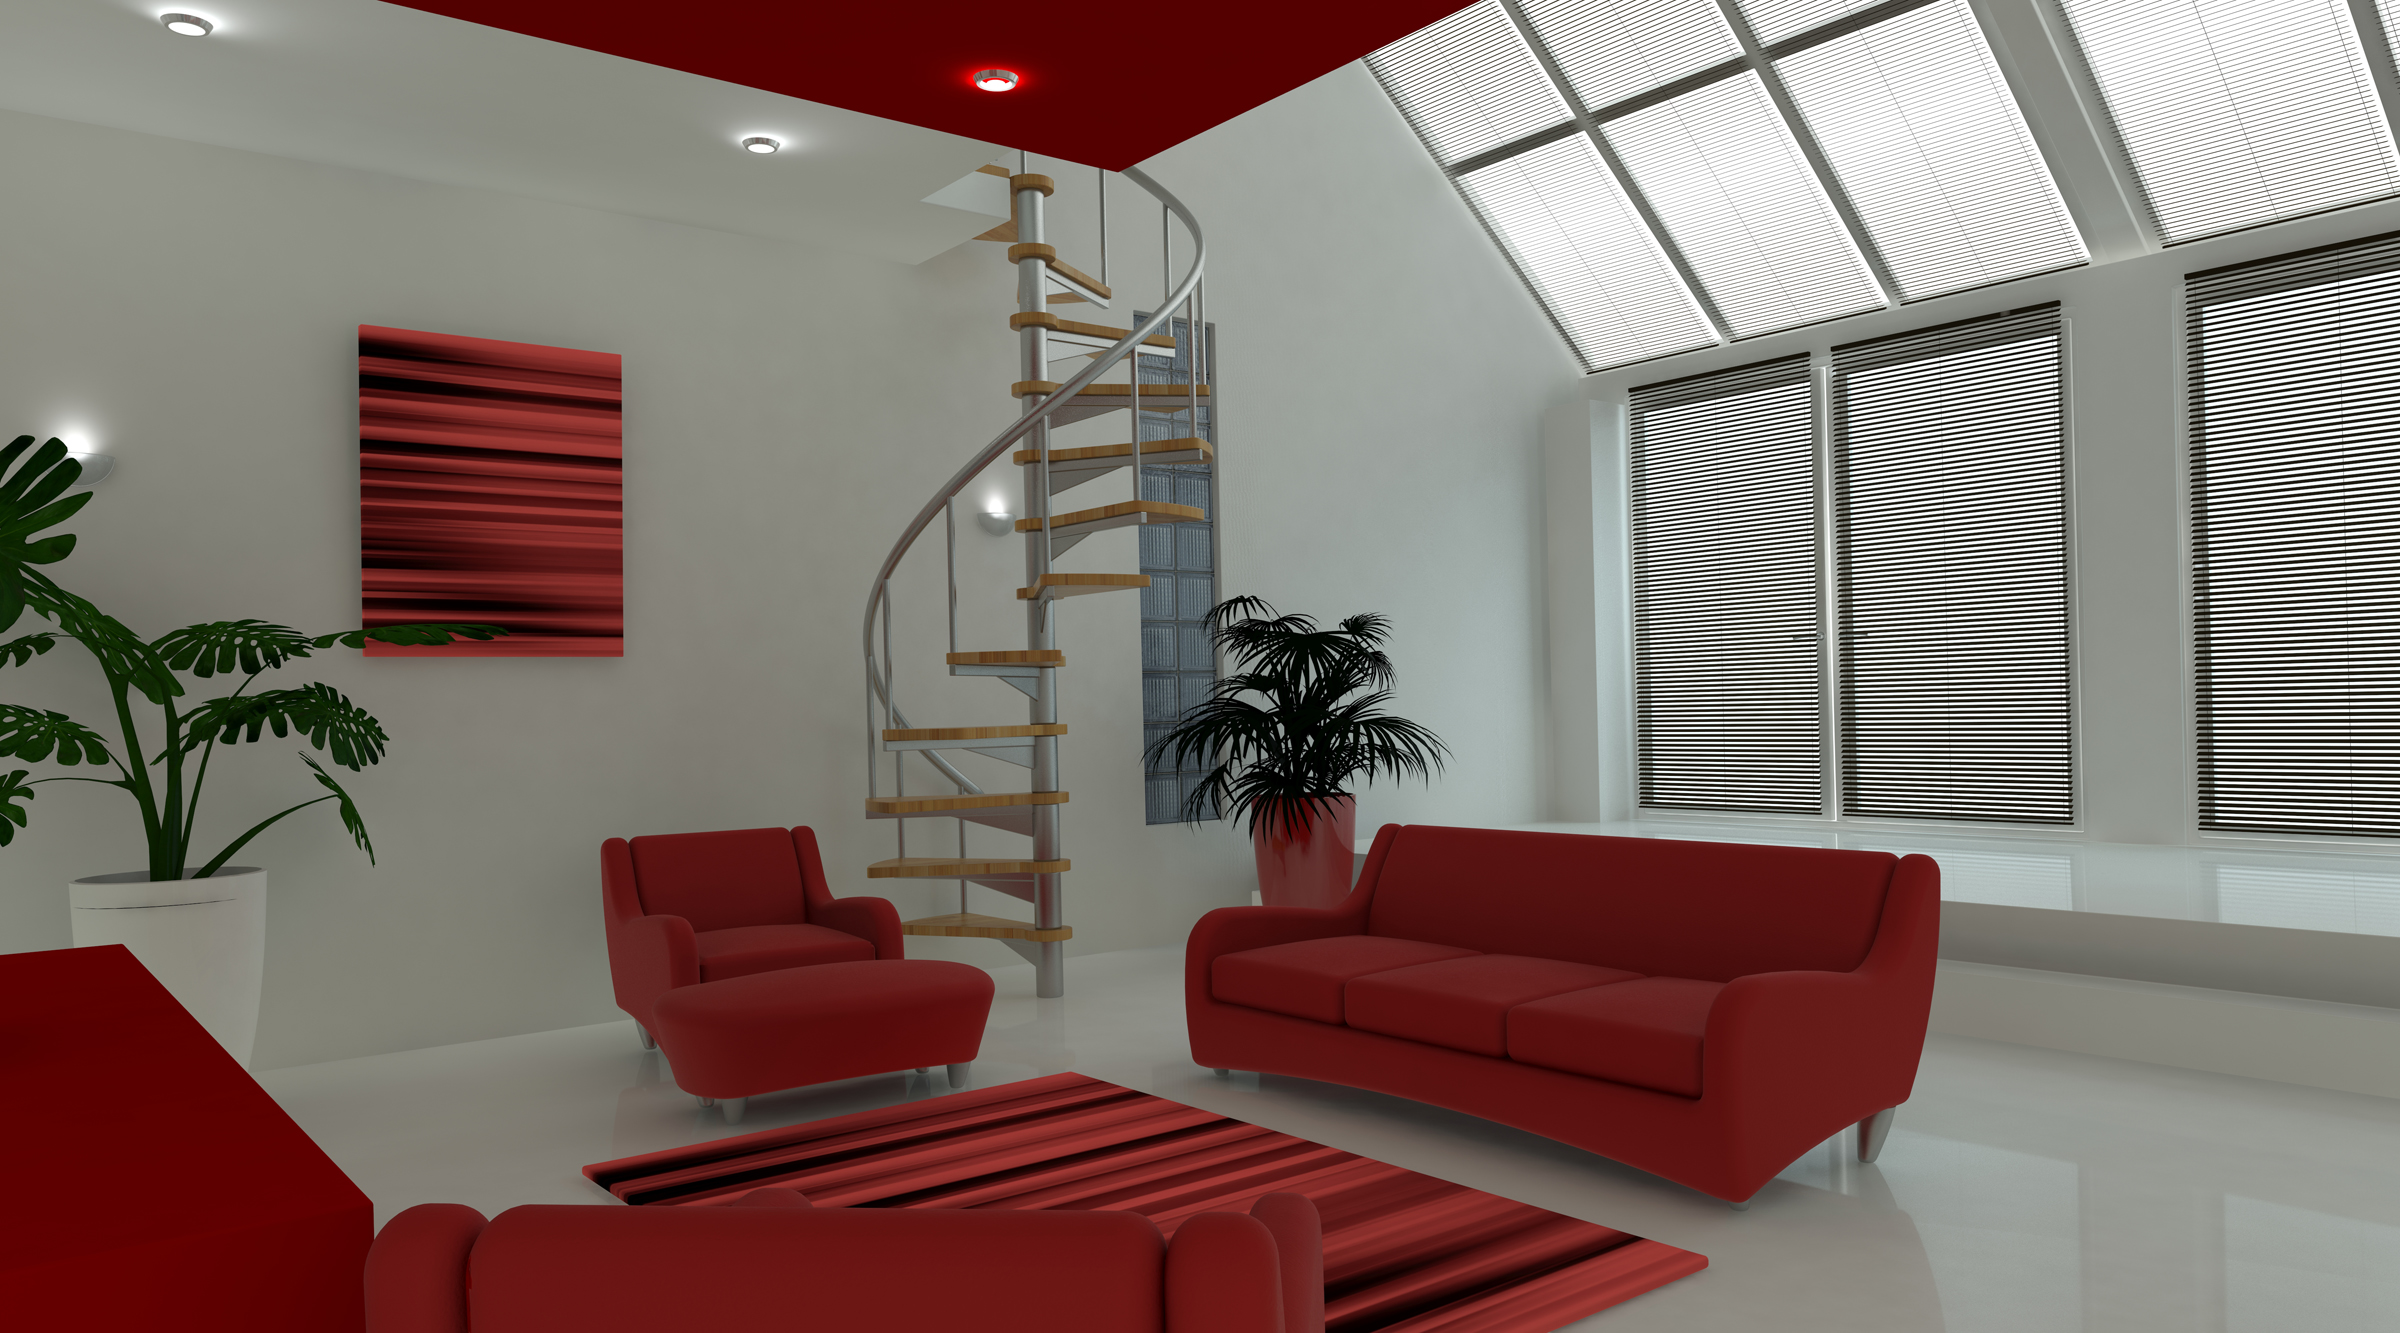 3d design of a room with stairs interior design marbella interior design marbella